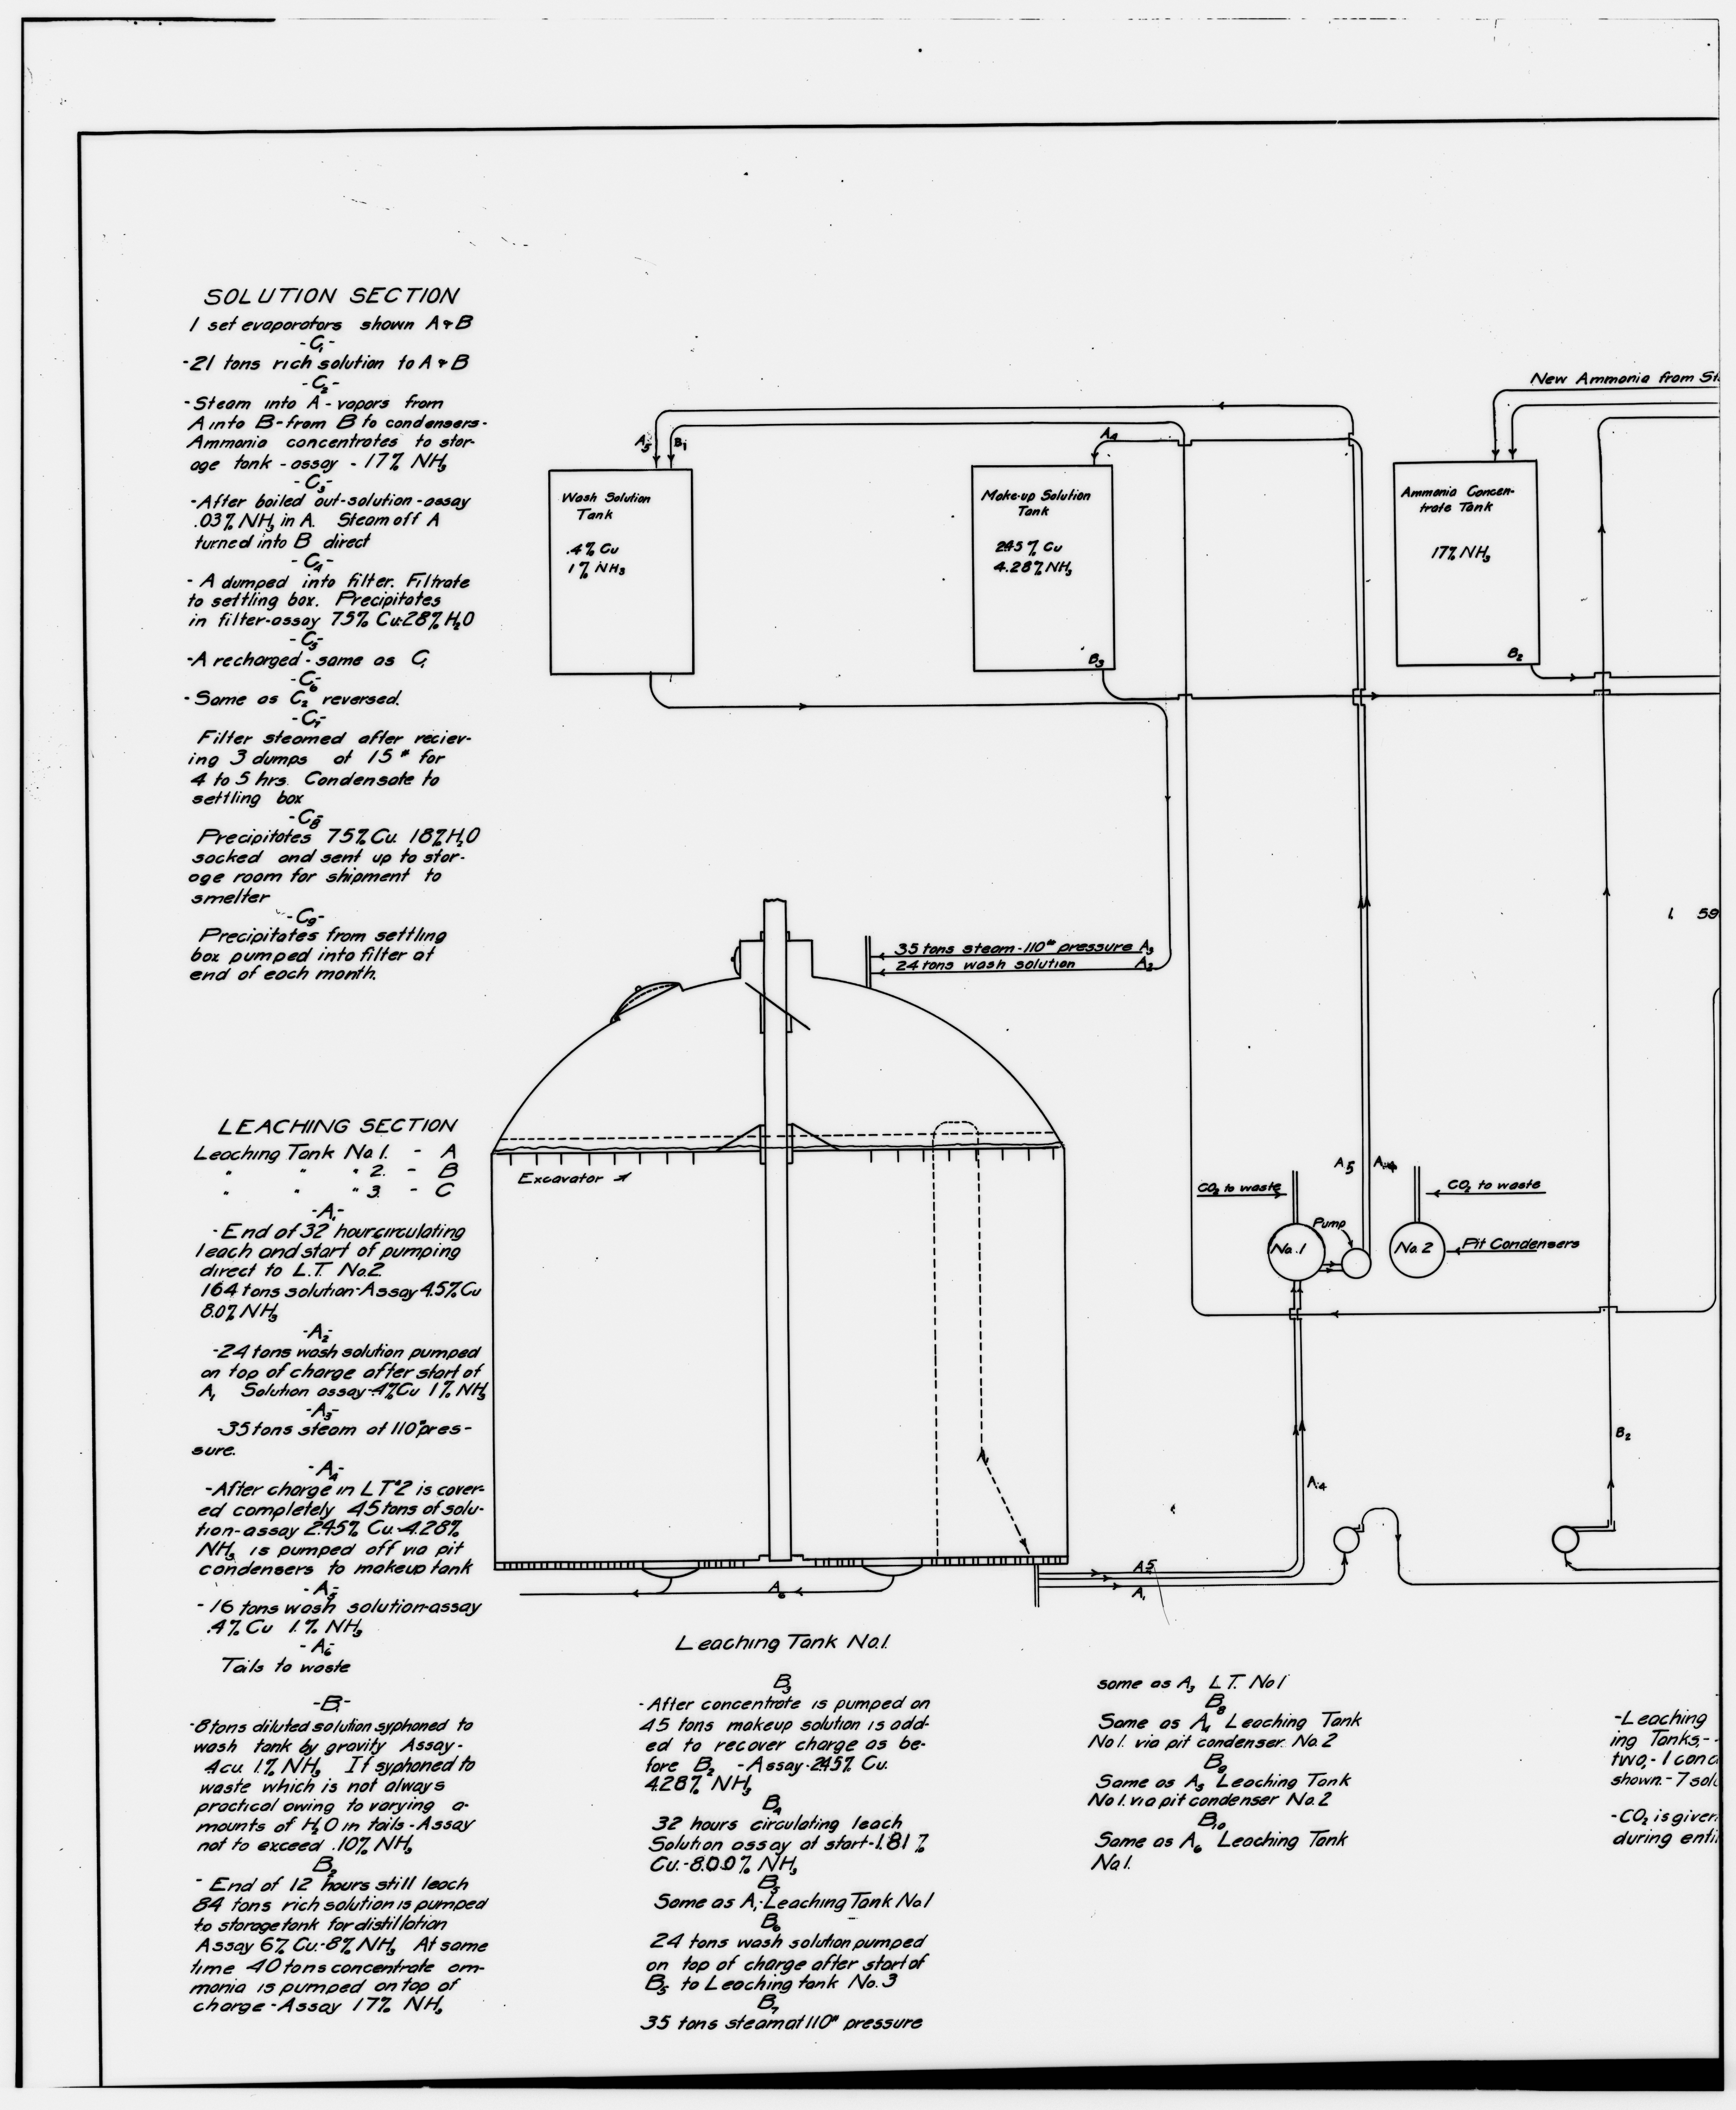 File:53. PHOTOCOPY OF DRAWING AMMONIA LEACHING PLANT FLOW